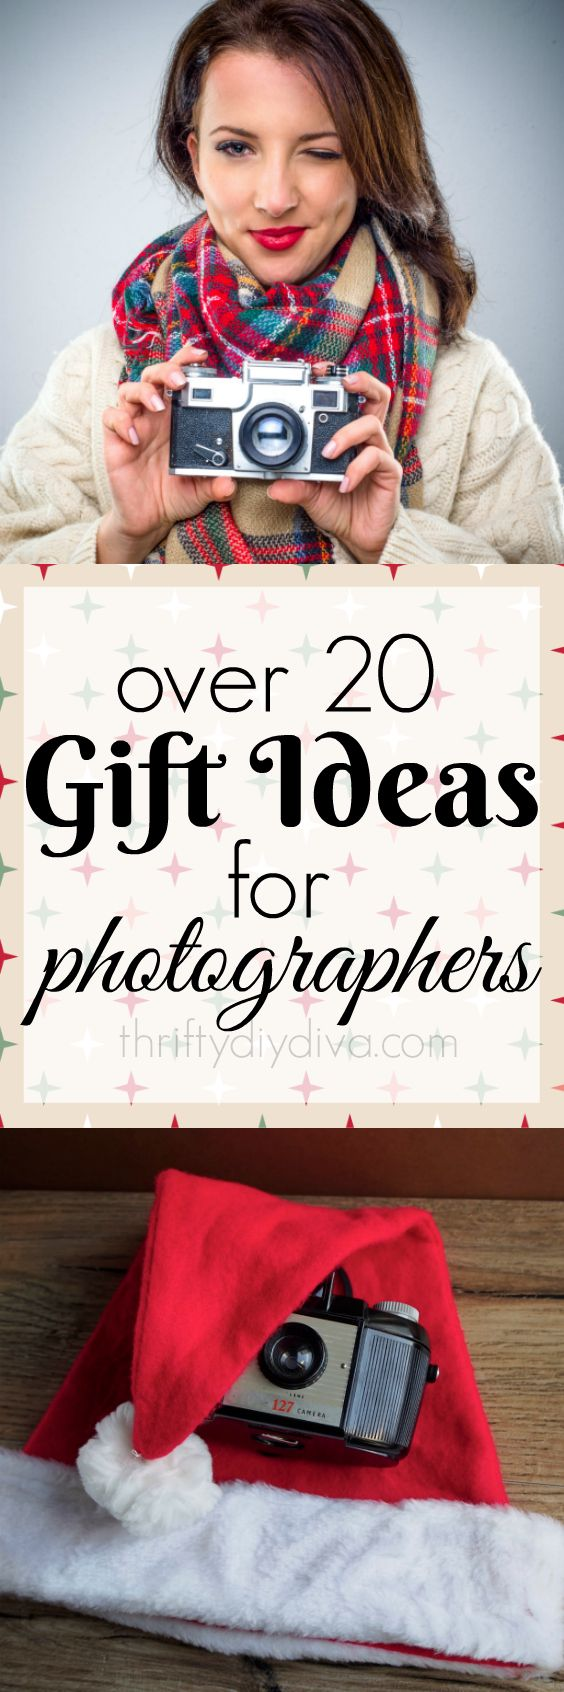 Best Ideas for Gifts and Deals for Photographers - If you have a photographer to shop for, be sure to check out this list of the best ideas and deals for gifts that they are sure to love! From t-shirts to mugs to jewelry, there is something for just about every photographer out there – from quirky to hilarious!